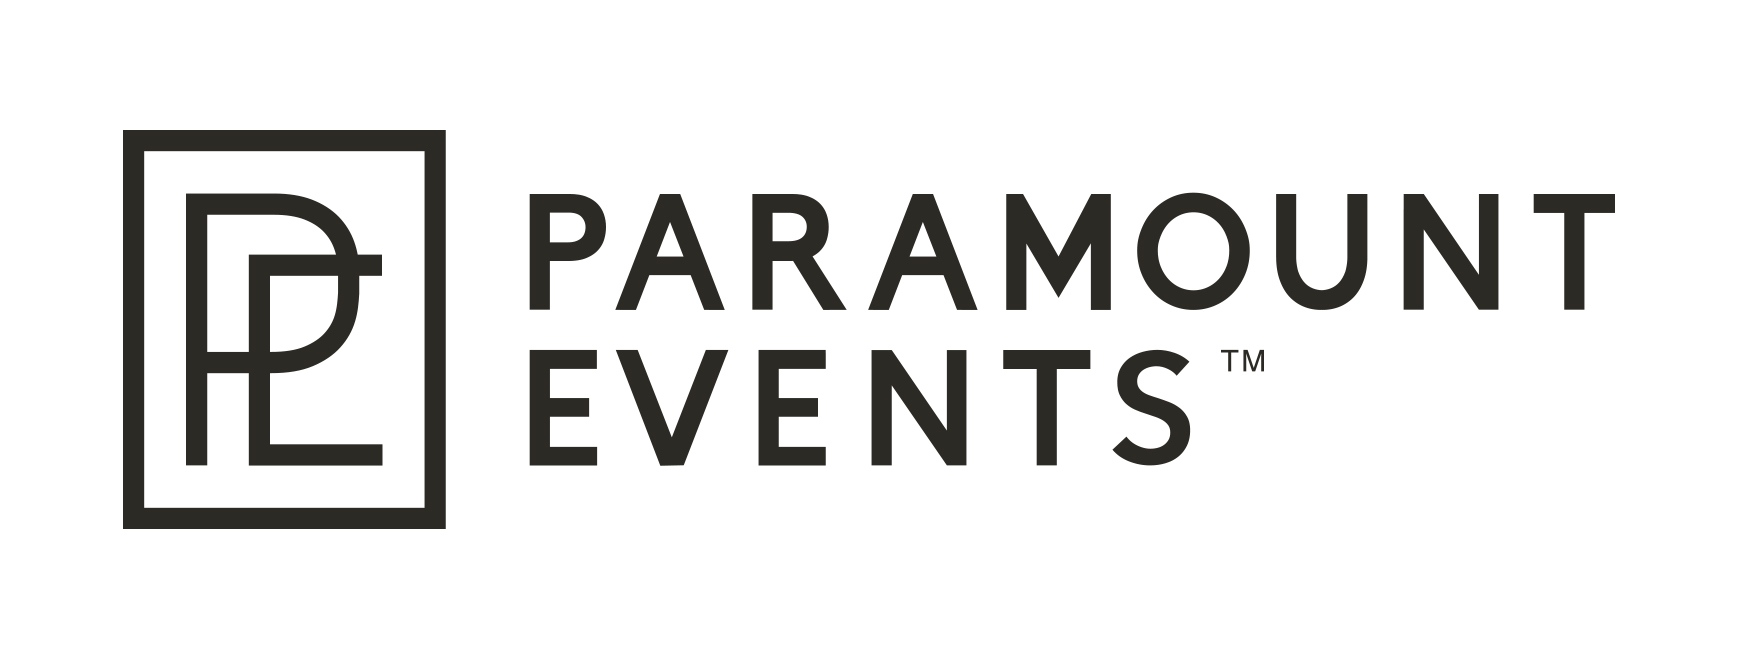 Paramount Events - Logo